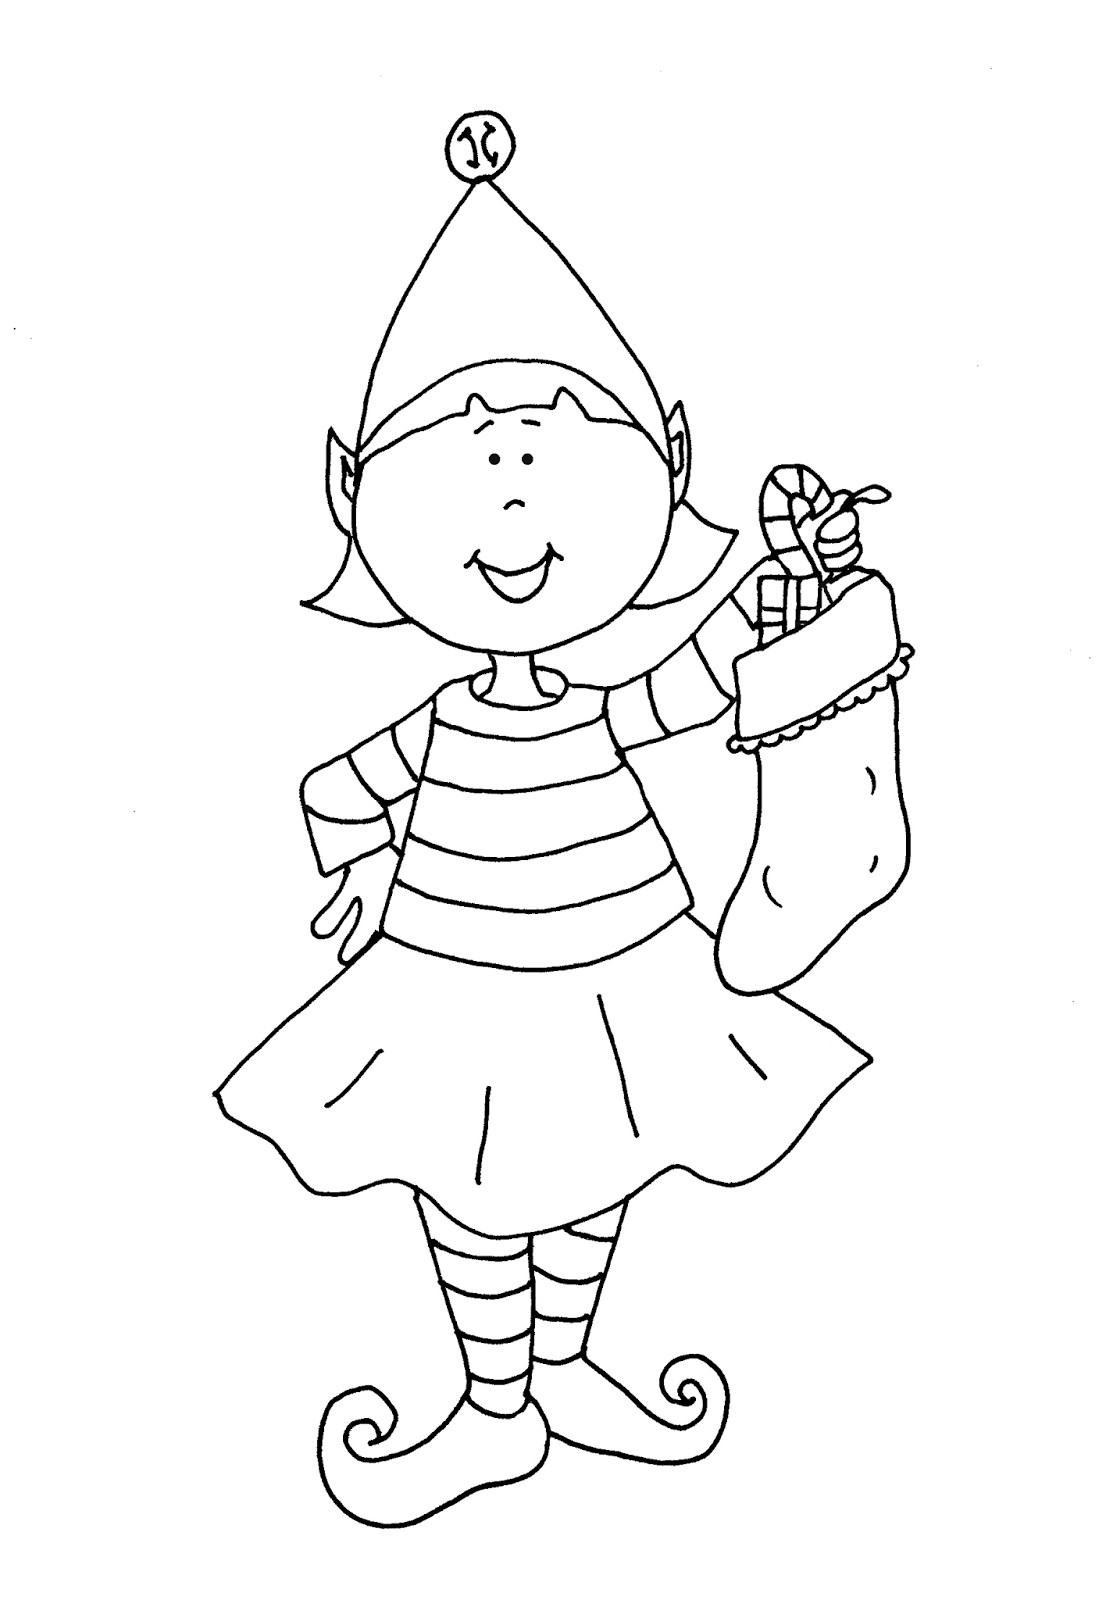 Best ideas about Elf On The Shelf Printable Coloring Pages . Save or Pin Printable Girl Elf The Shelf Coloring Pages Coloring Home Now.